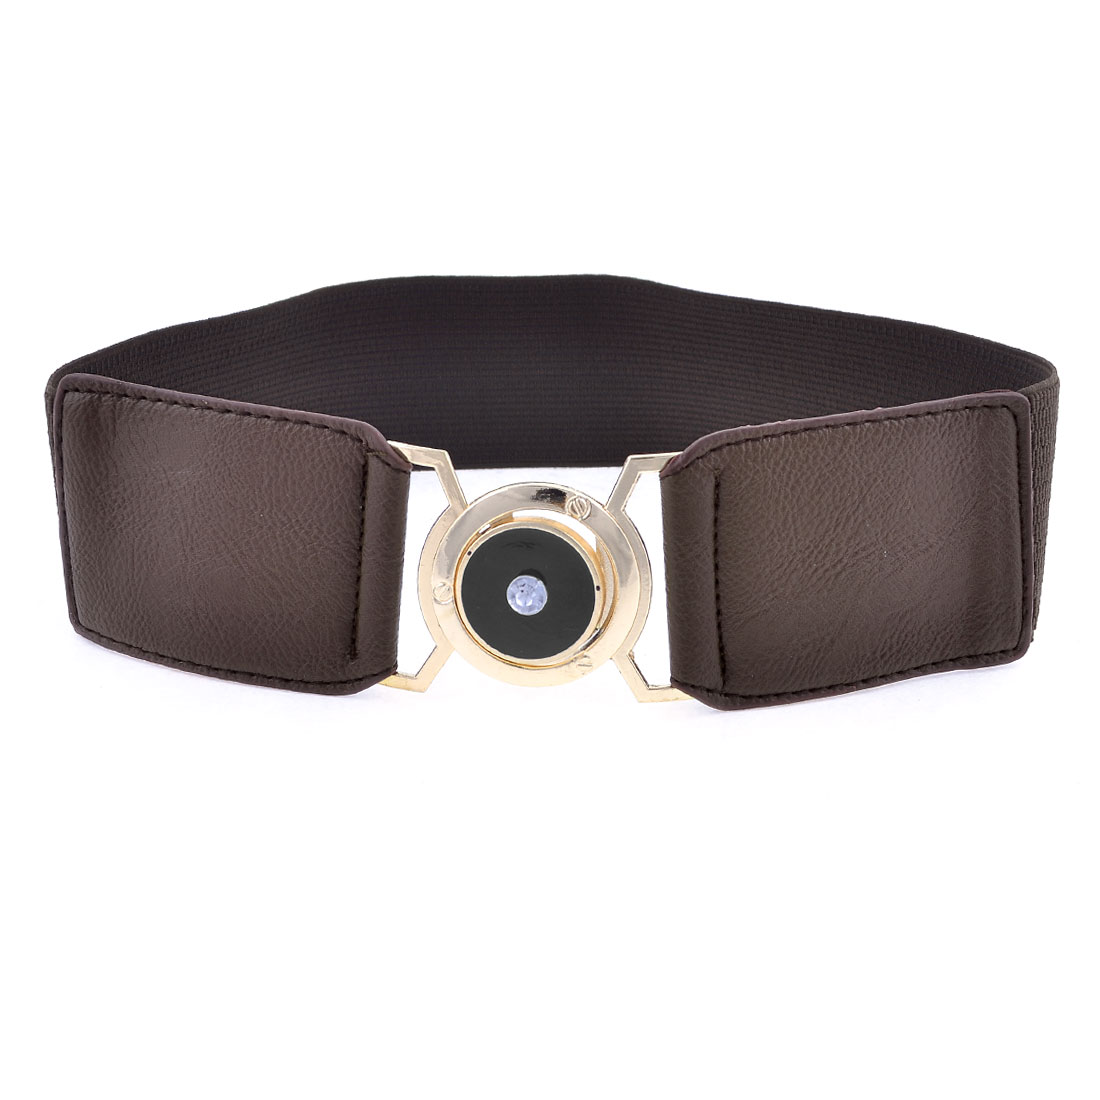 Ladies Round Shaped Metal Interlocking Buckle Stretch Waistband Dark Brown